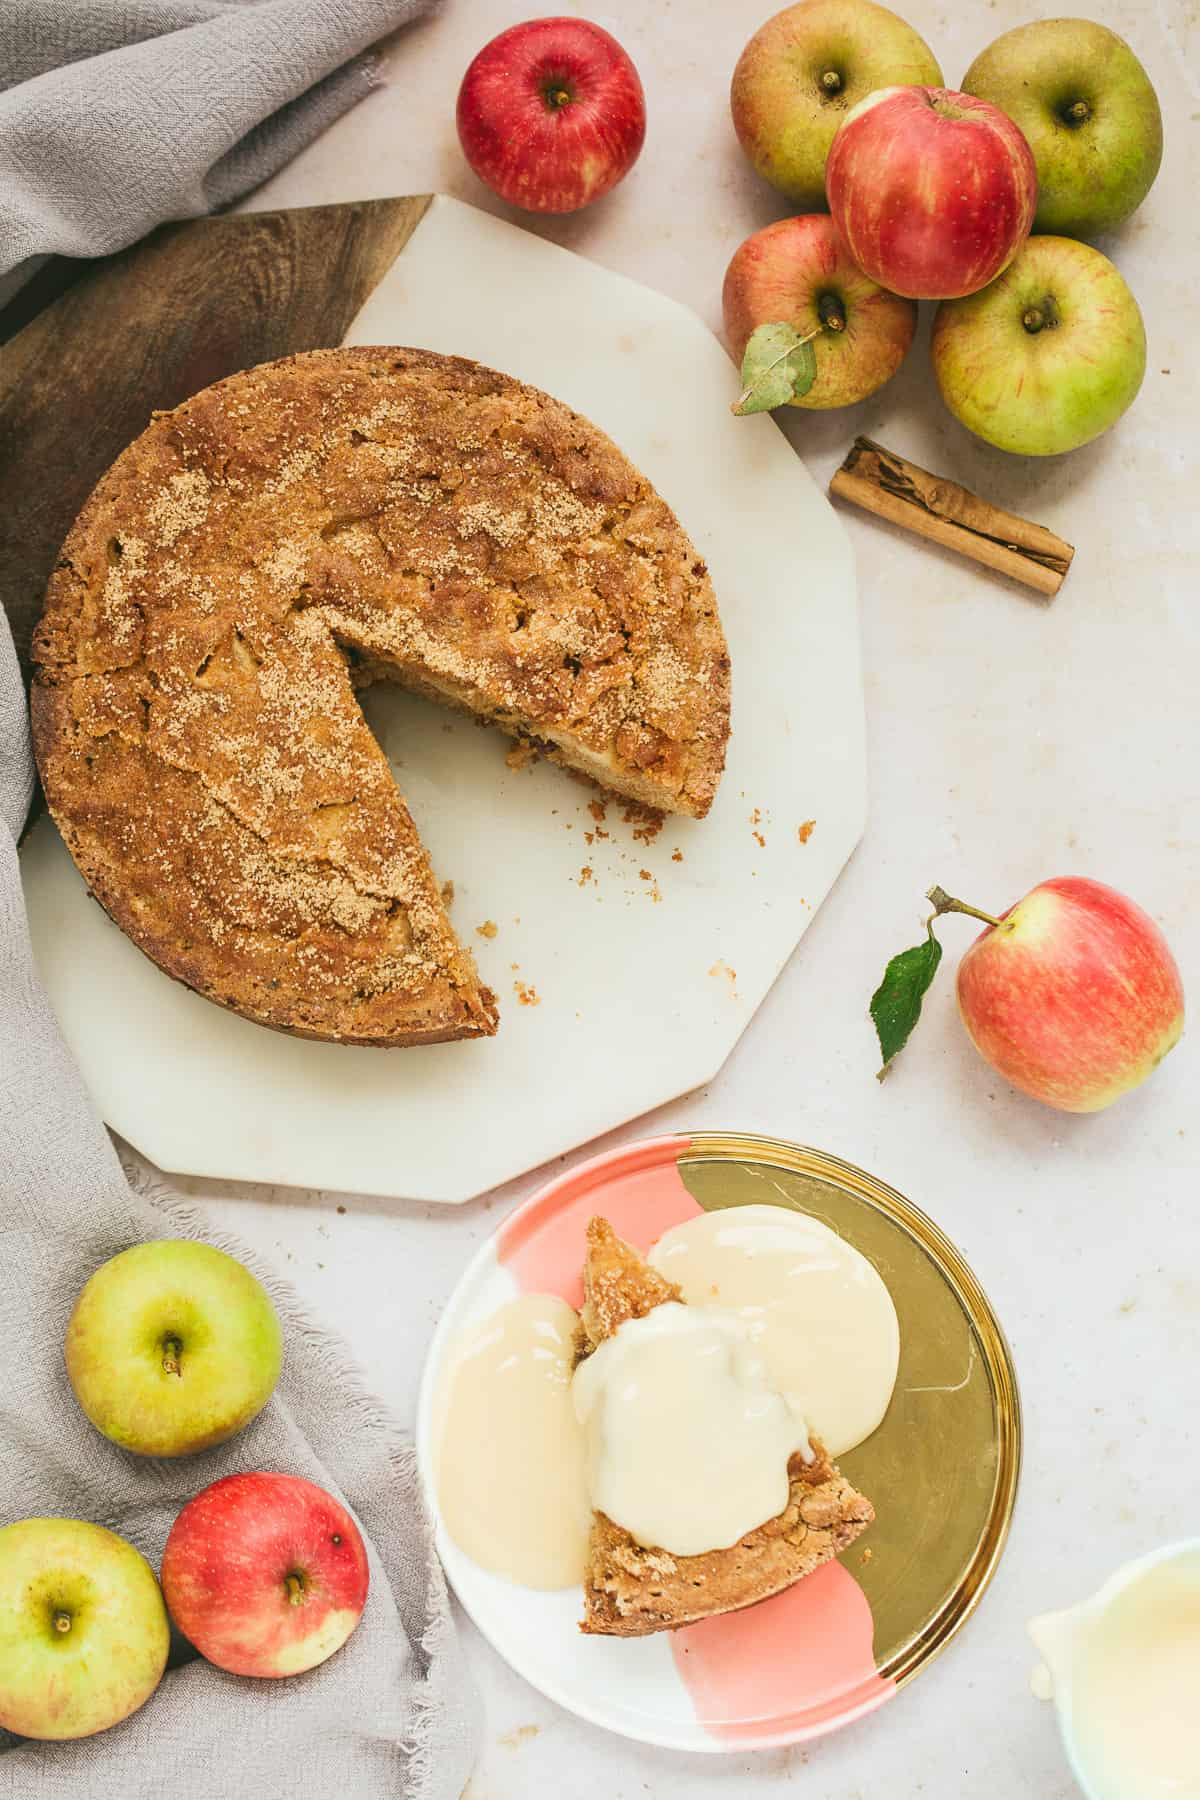 A round Dorset Apple Cake with a slice cut out. The slice is on a plate next to the cake and has custard poured over the top of it.